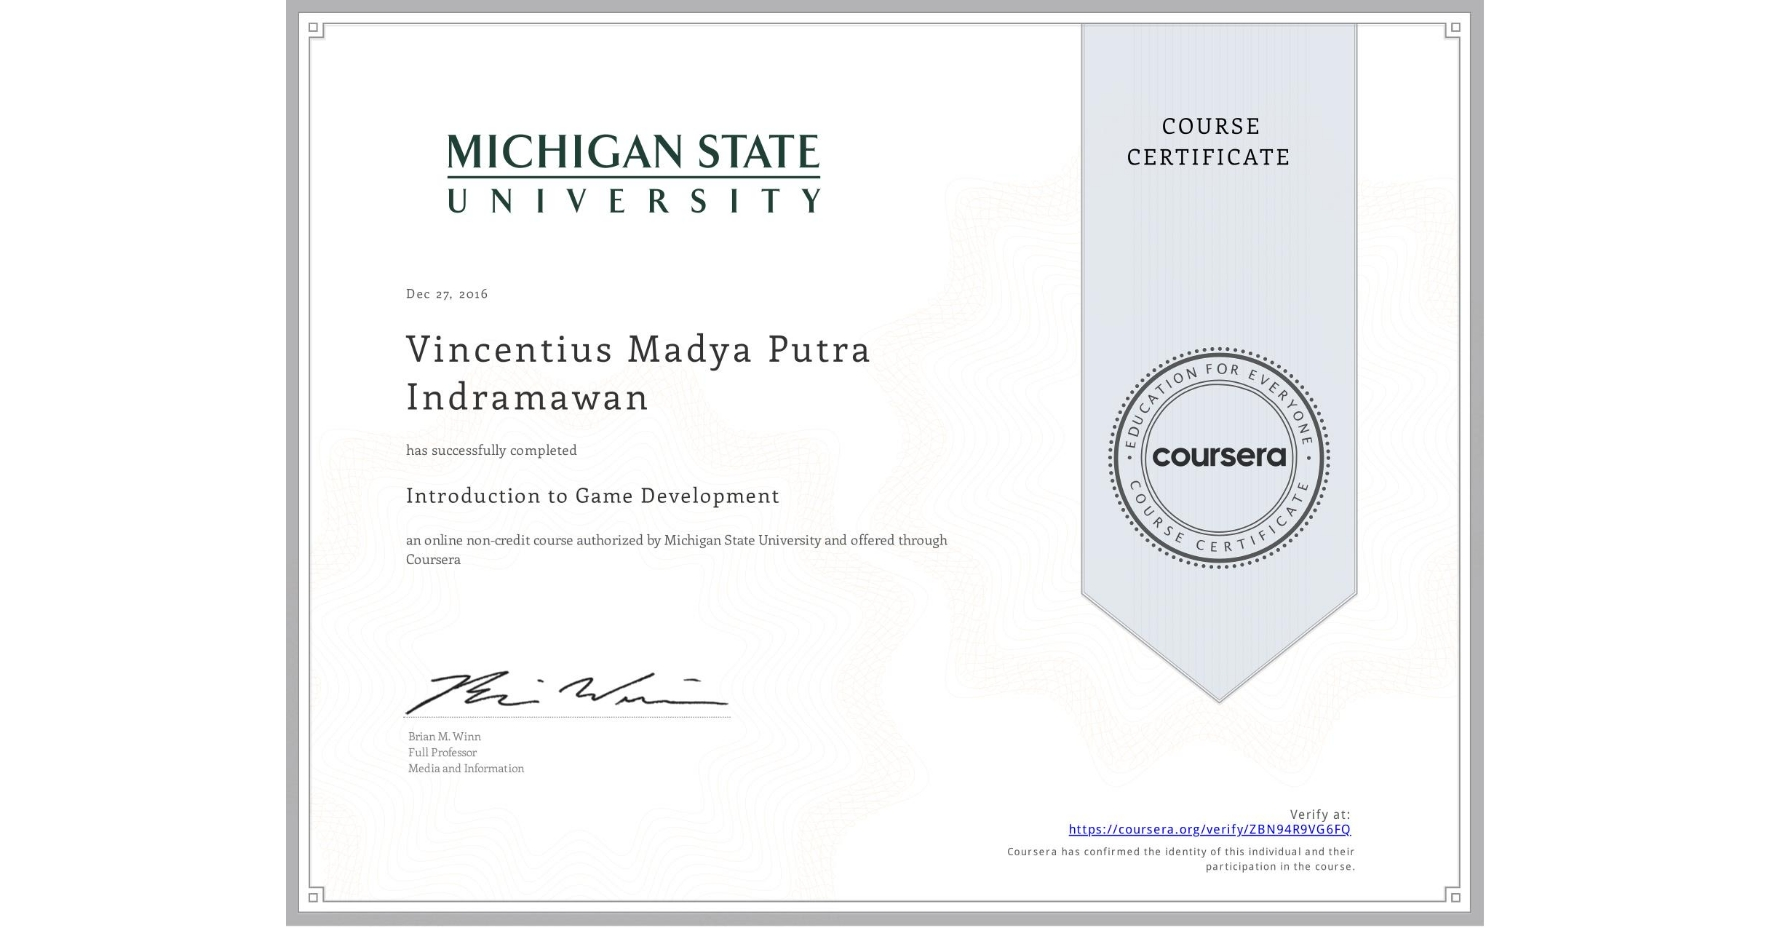 View certificate for Vincentius Madya Putra Indramawan, Introduction to Game Development, an online non-credit course authorized by Michigan State University and offered through Coursera